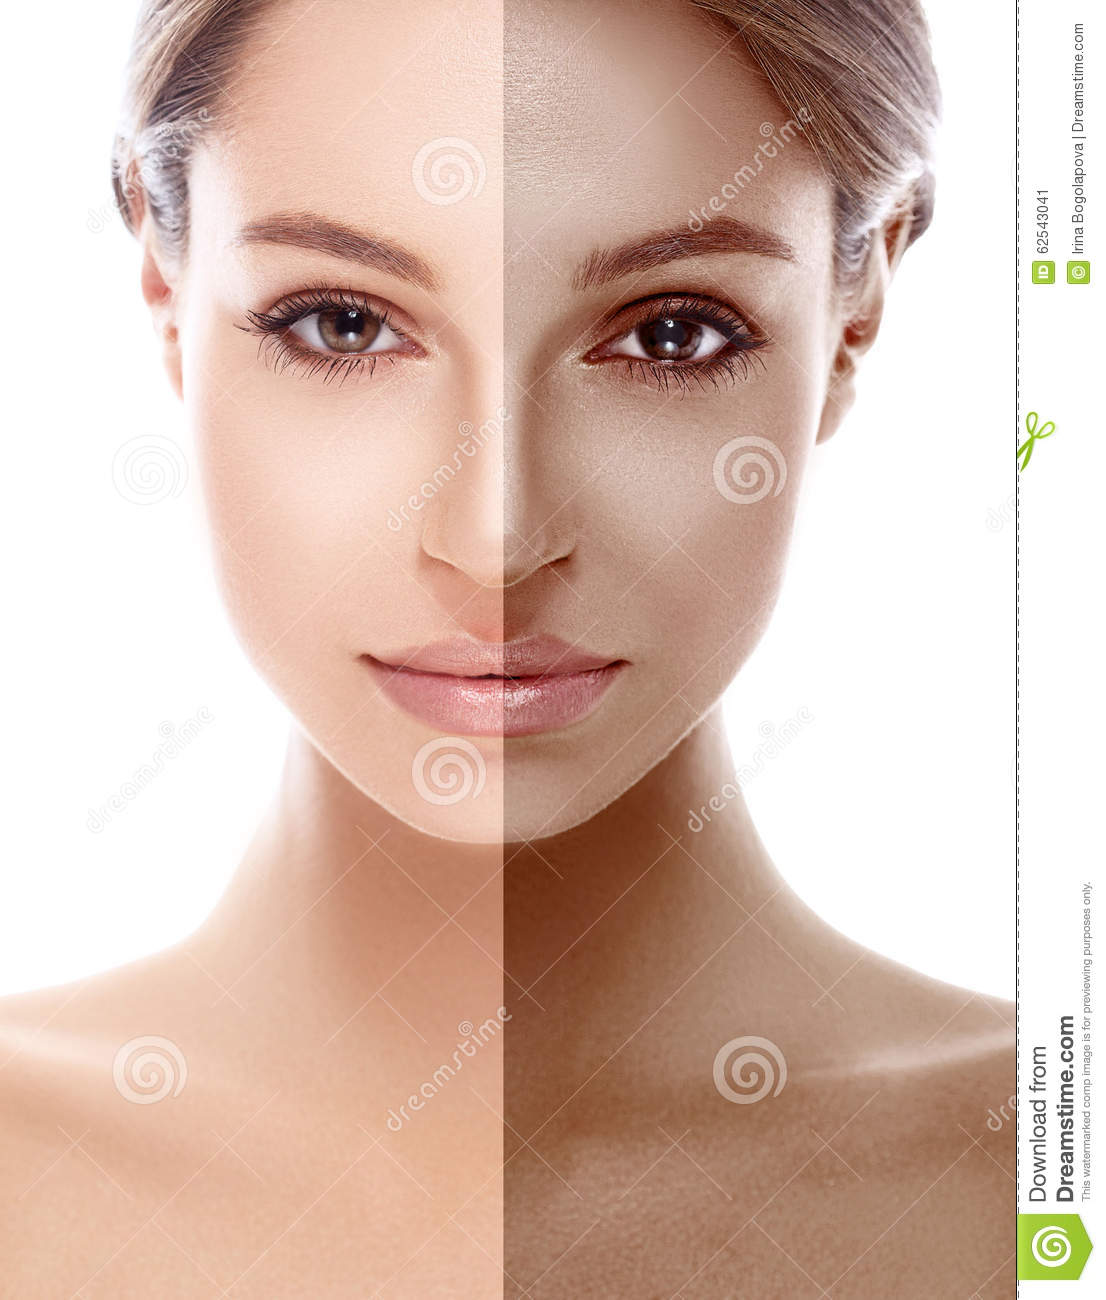 Woman Half Face Tan Beautiful Portrait Stock Photo